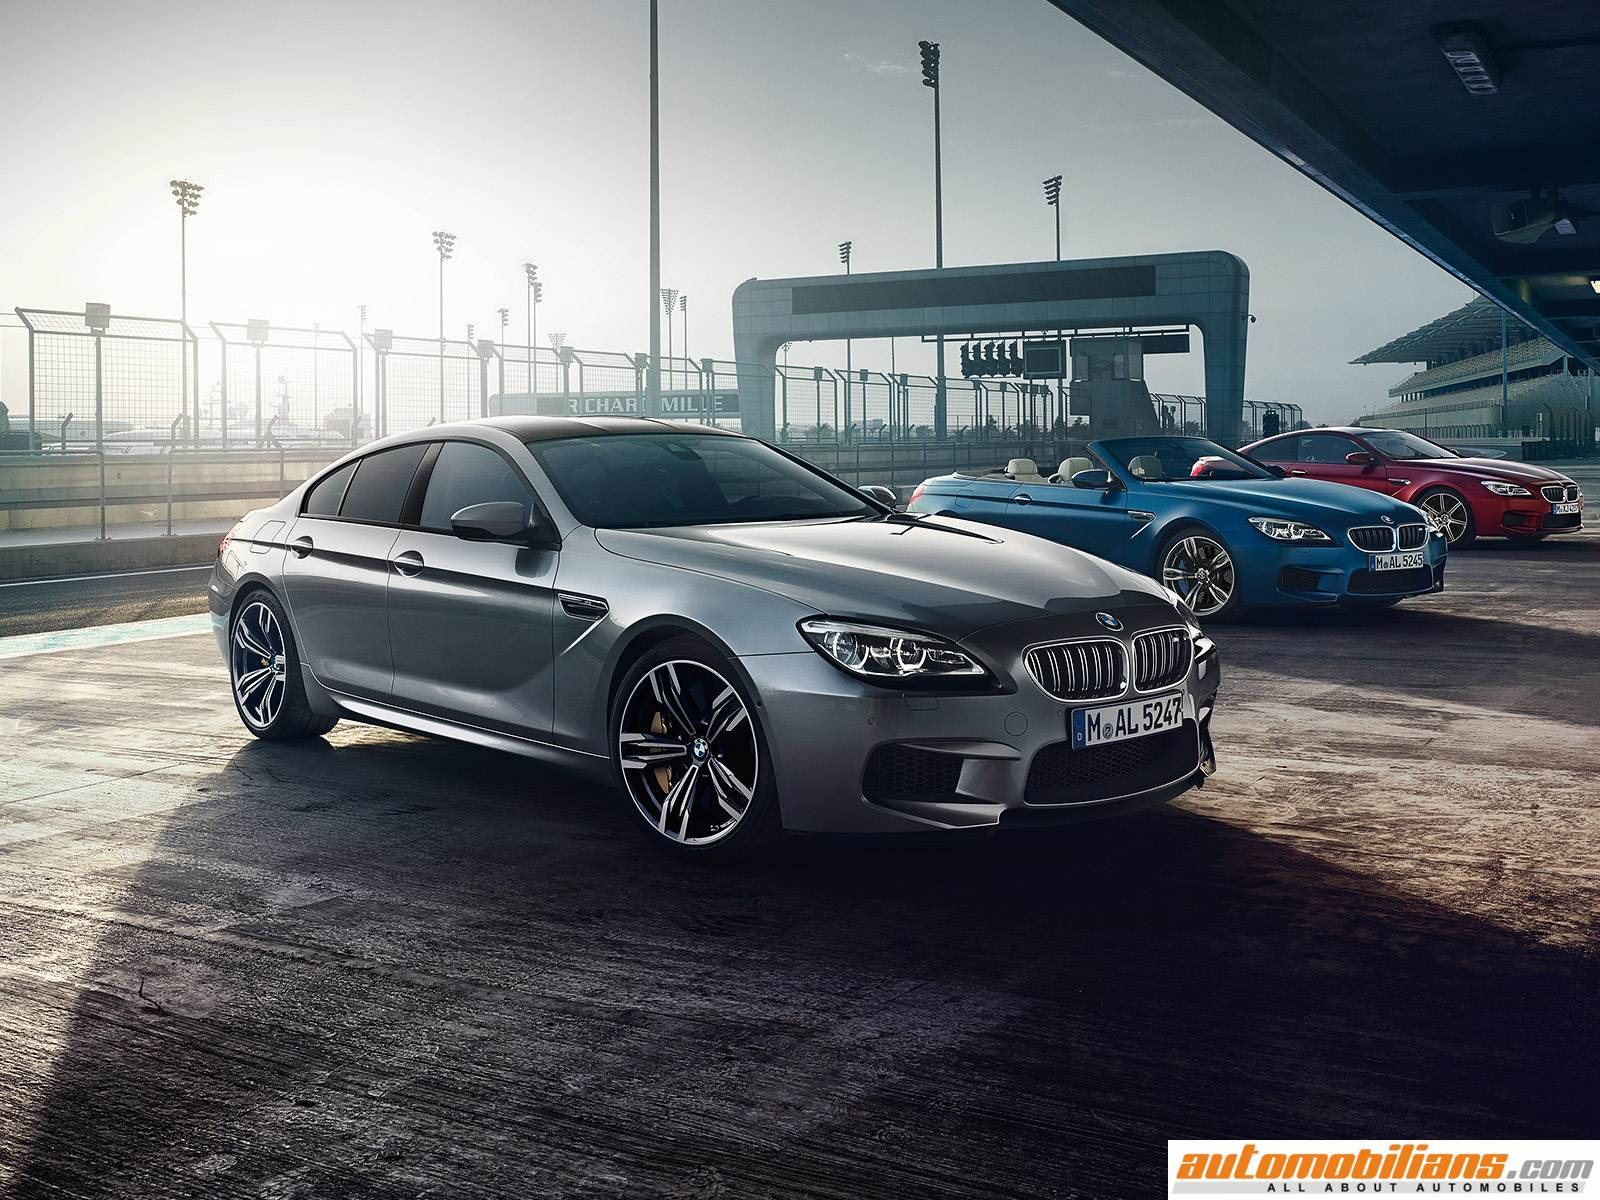 bmw m6 gran coup launched in india at rs crores ex showroom india bmw m studio. Black Bedroom Furniture Sets. Home Design Ideas